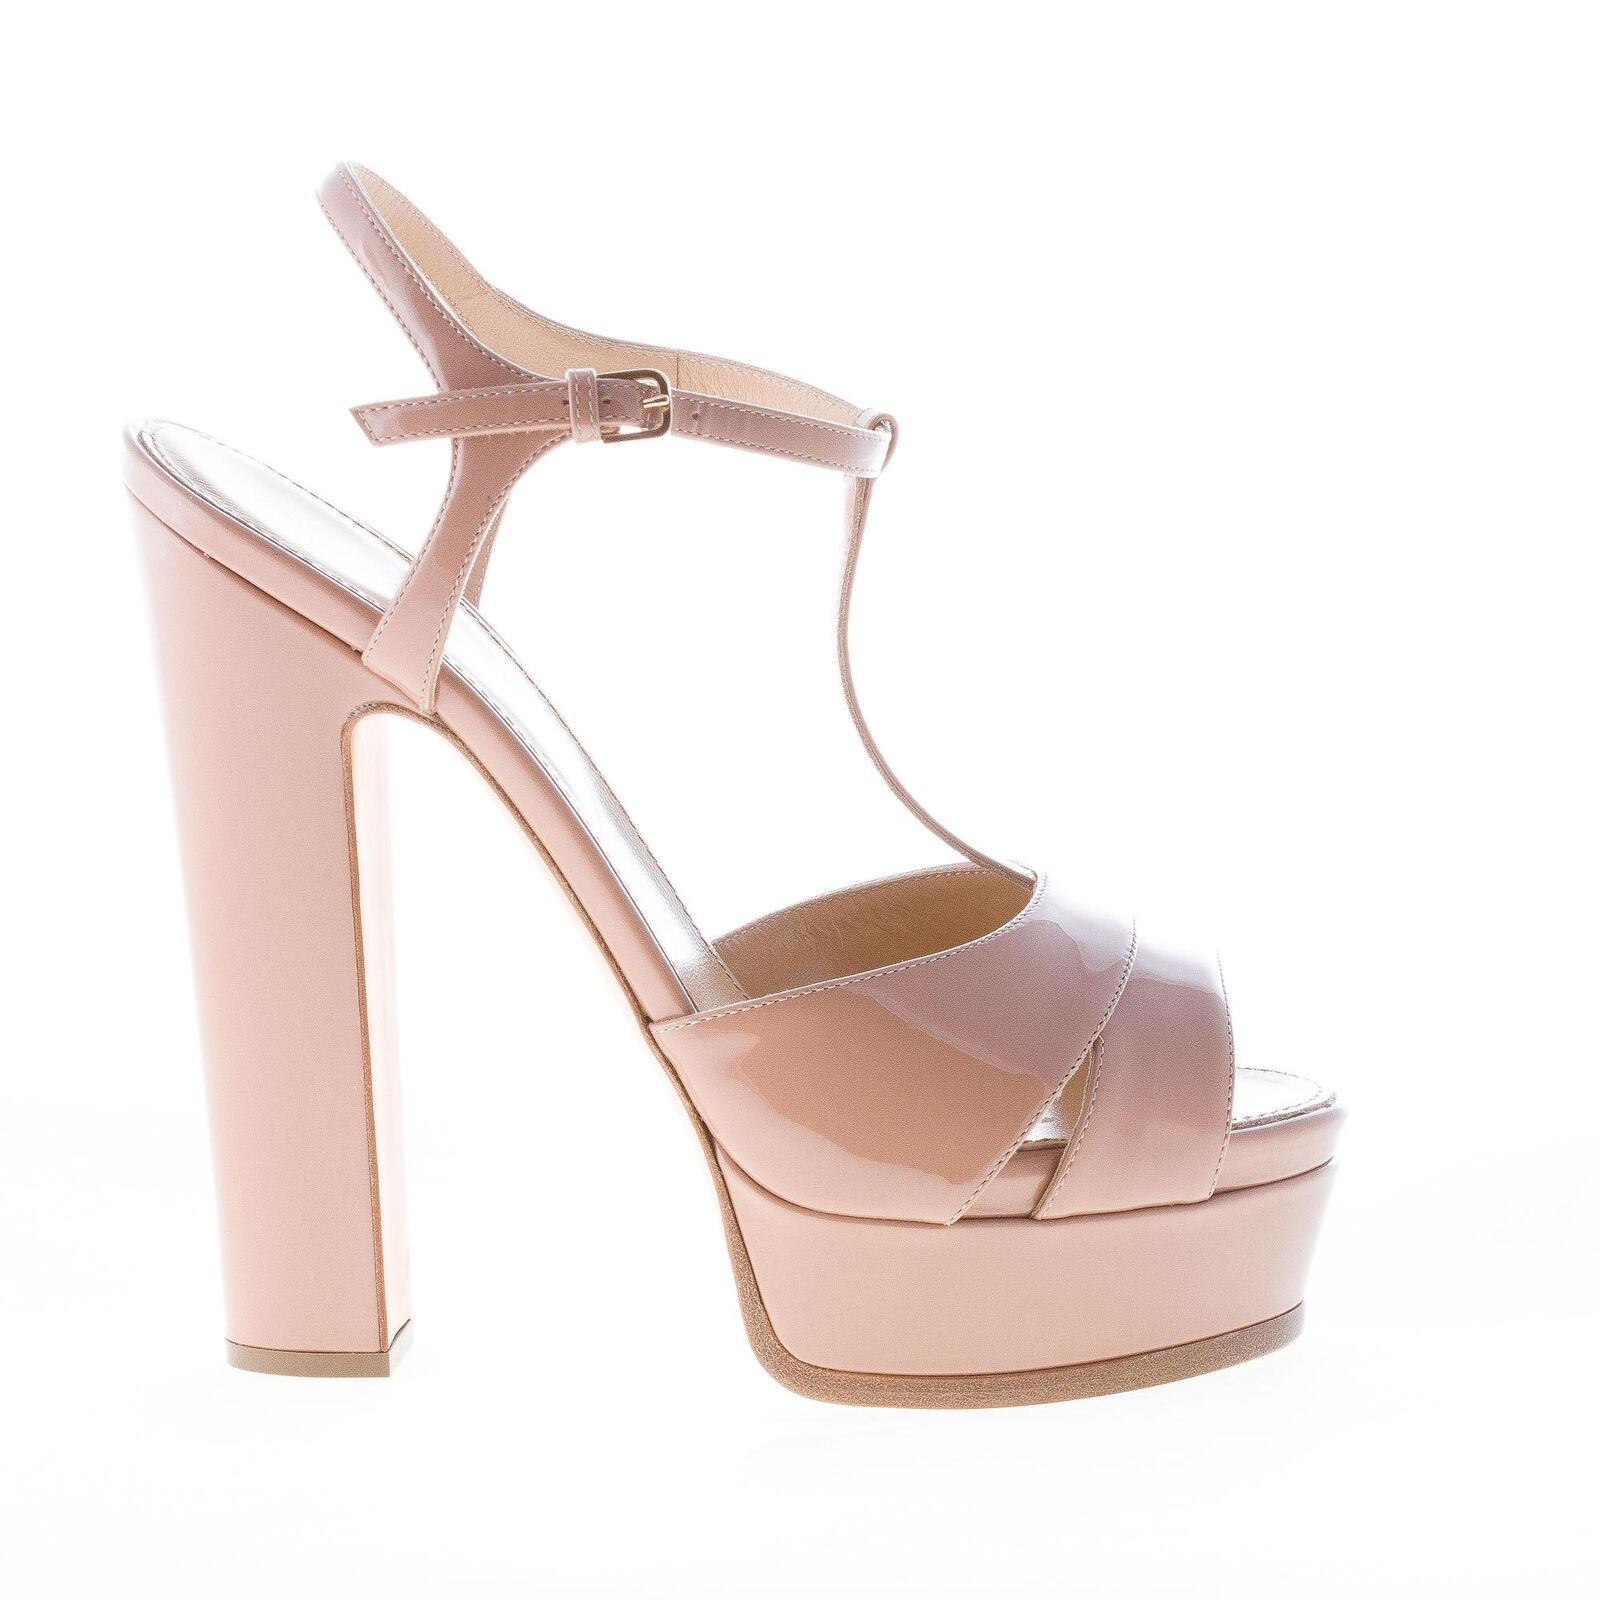 SERGIO ROSSI women shoes Edwige bright bright bright skin patent leather sandal with platform 12efb8